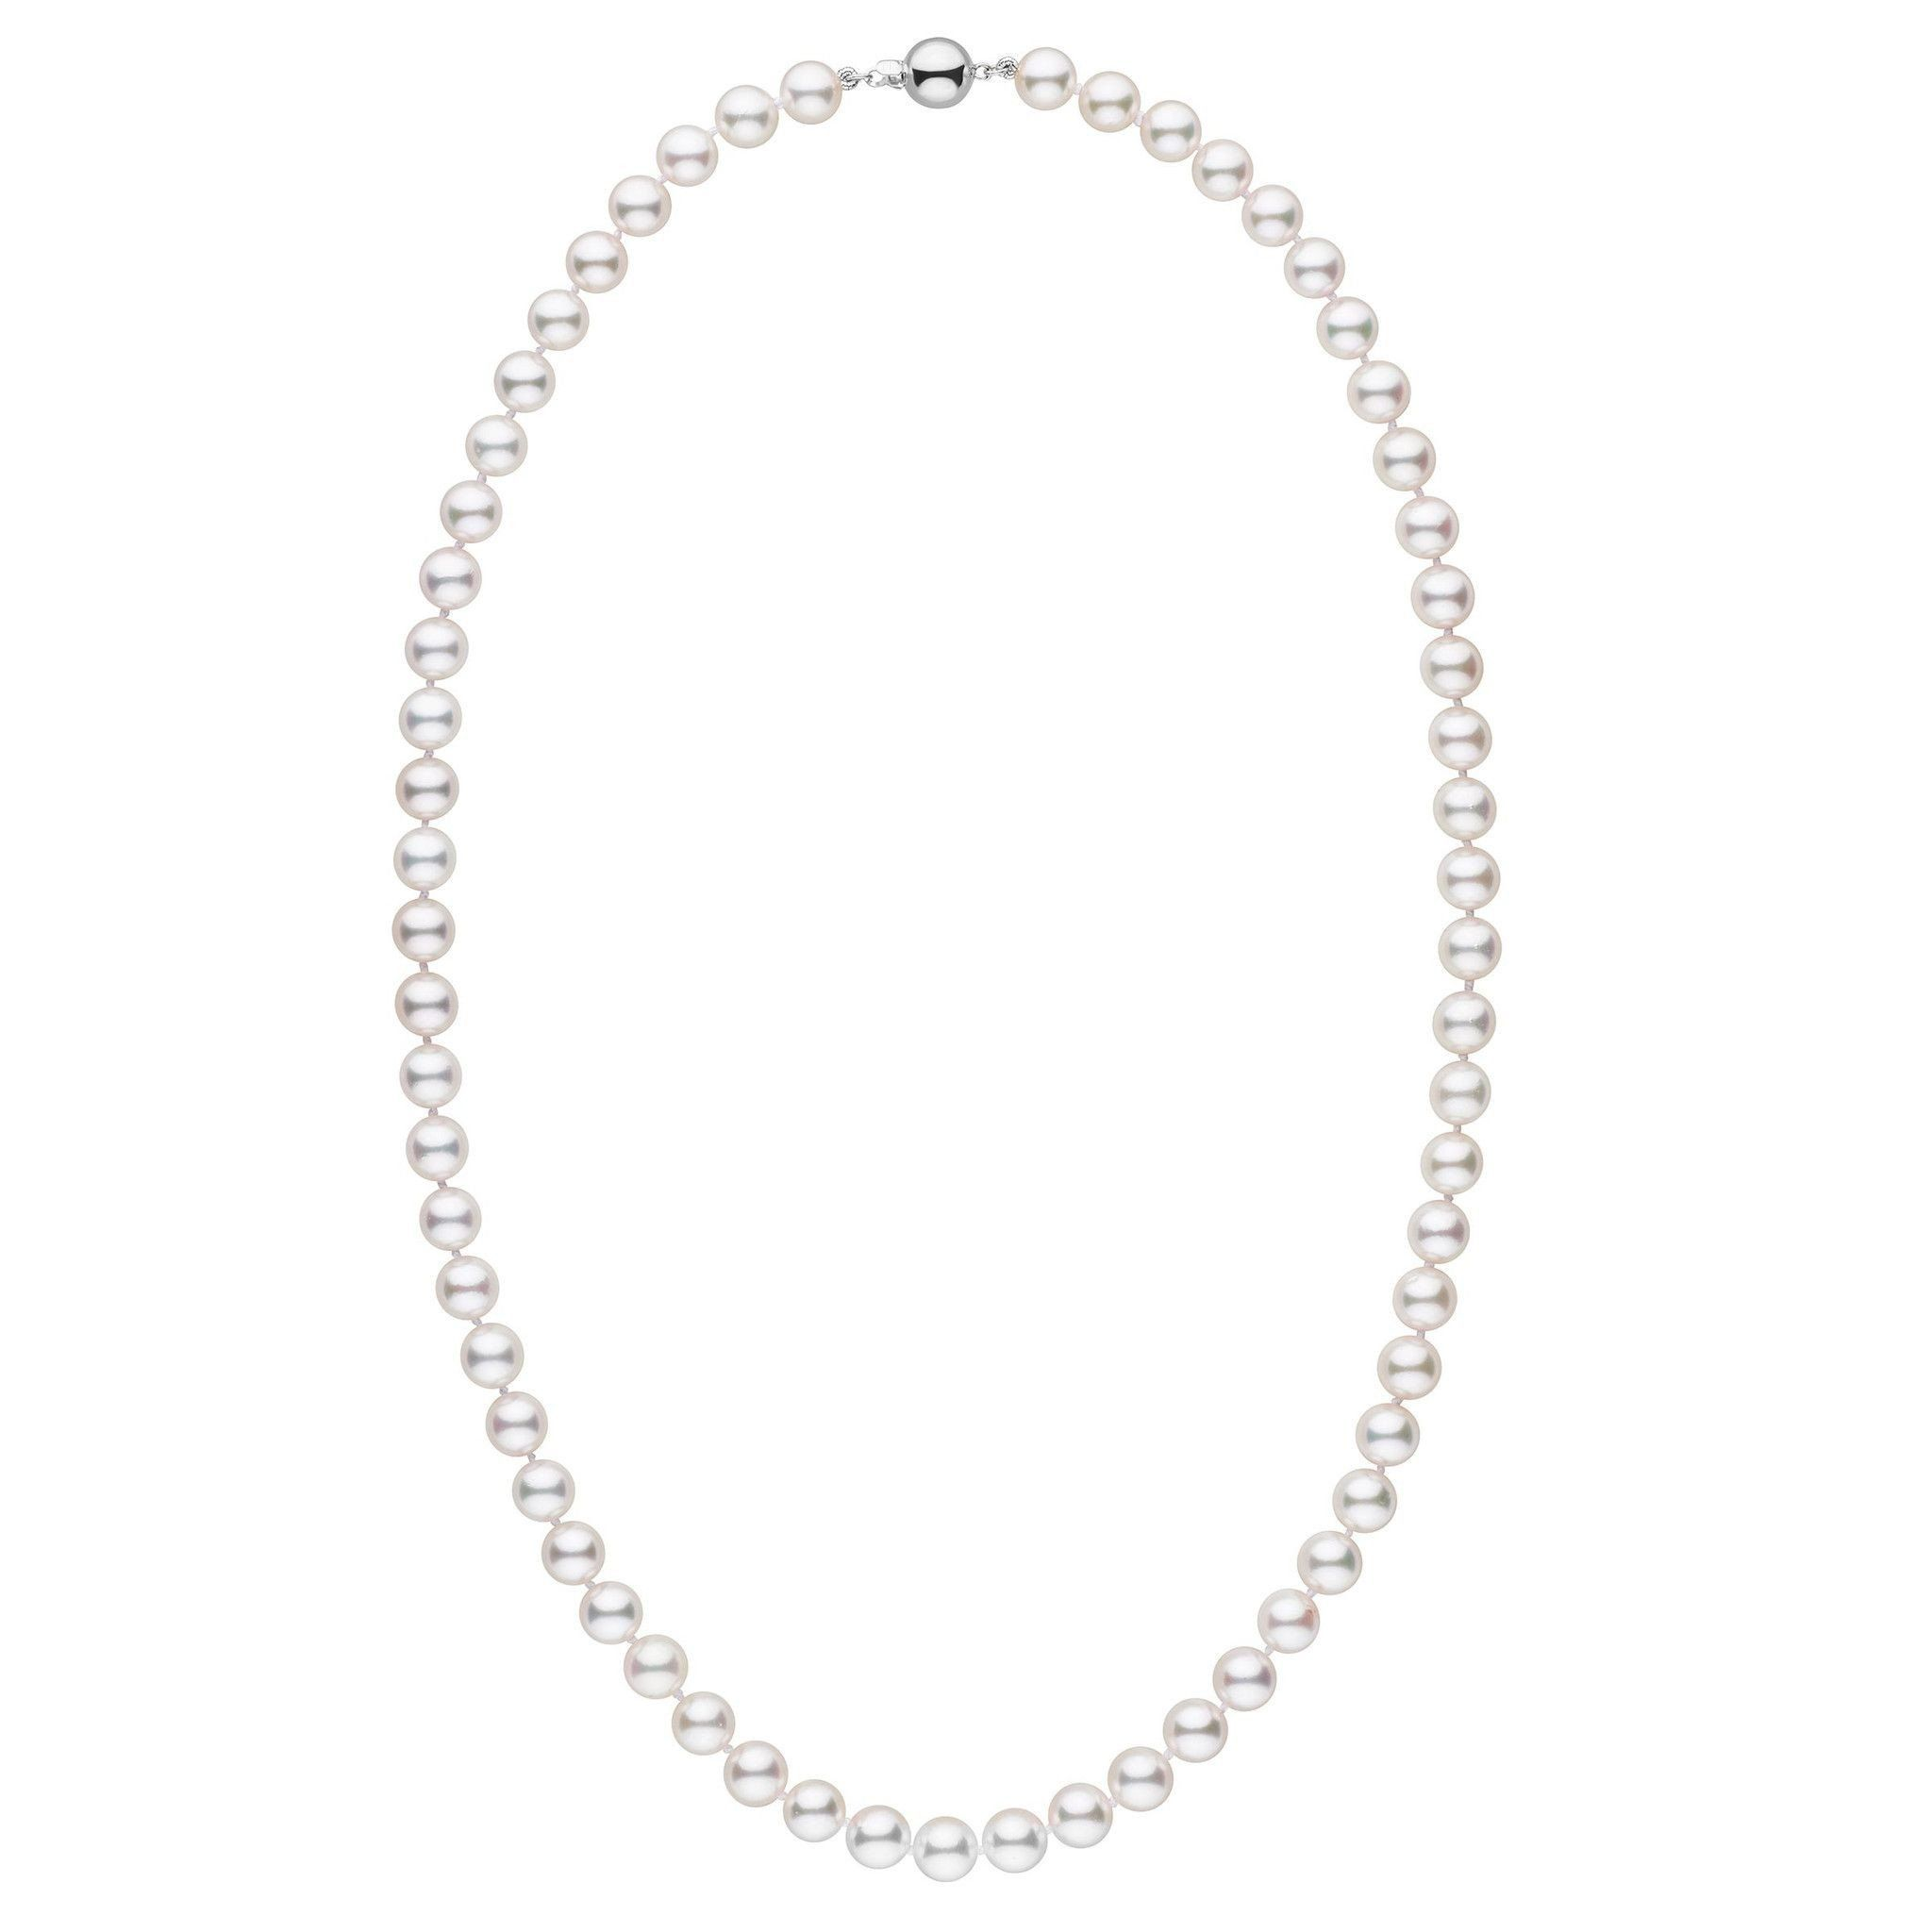 7.0-7.5 mm White Akoya 22 inch AAA Pearl Necklace